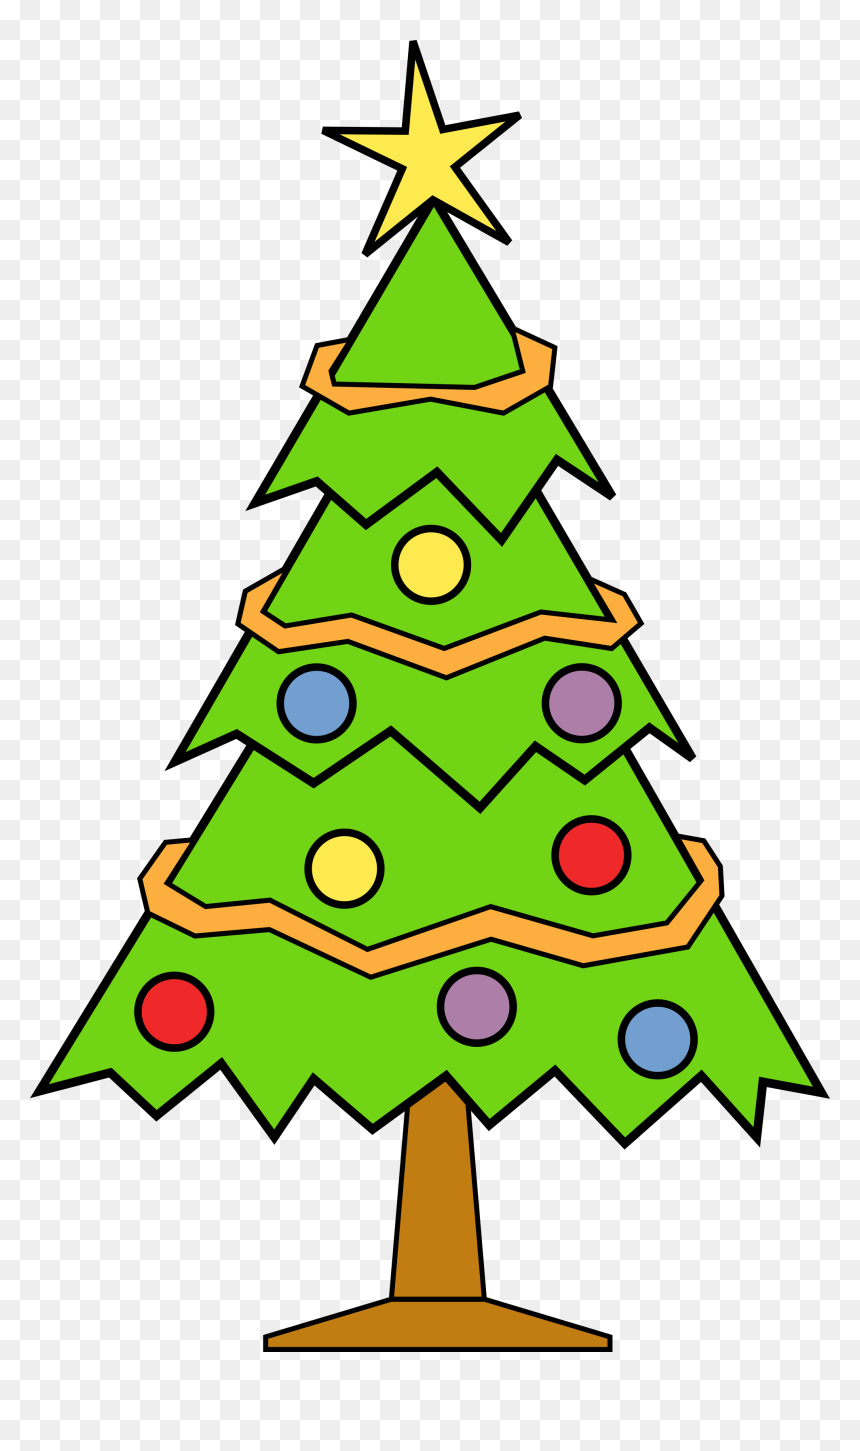 The Grinch Clip Art Transparent Background Christmas Tree Clipart Hd Png Download Vhv